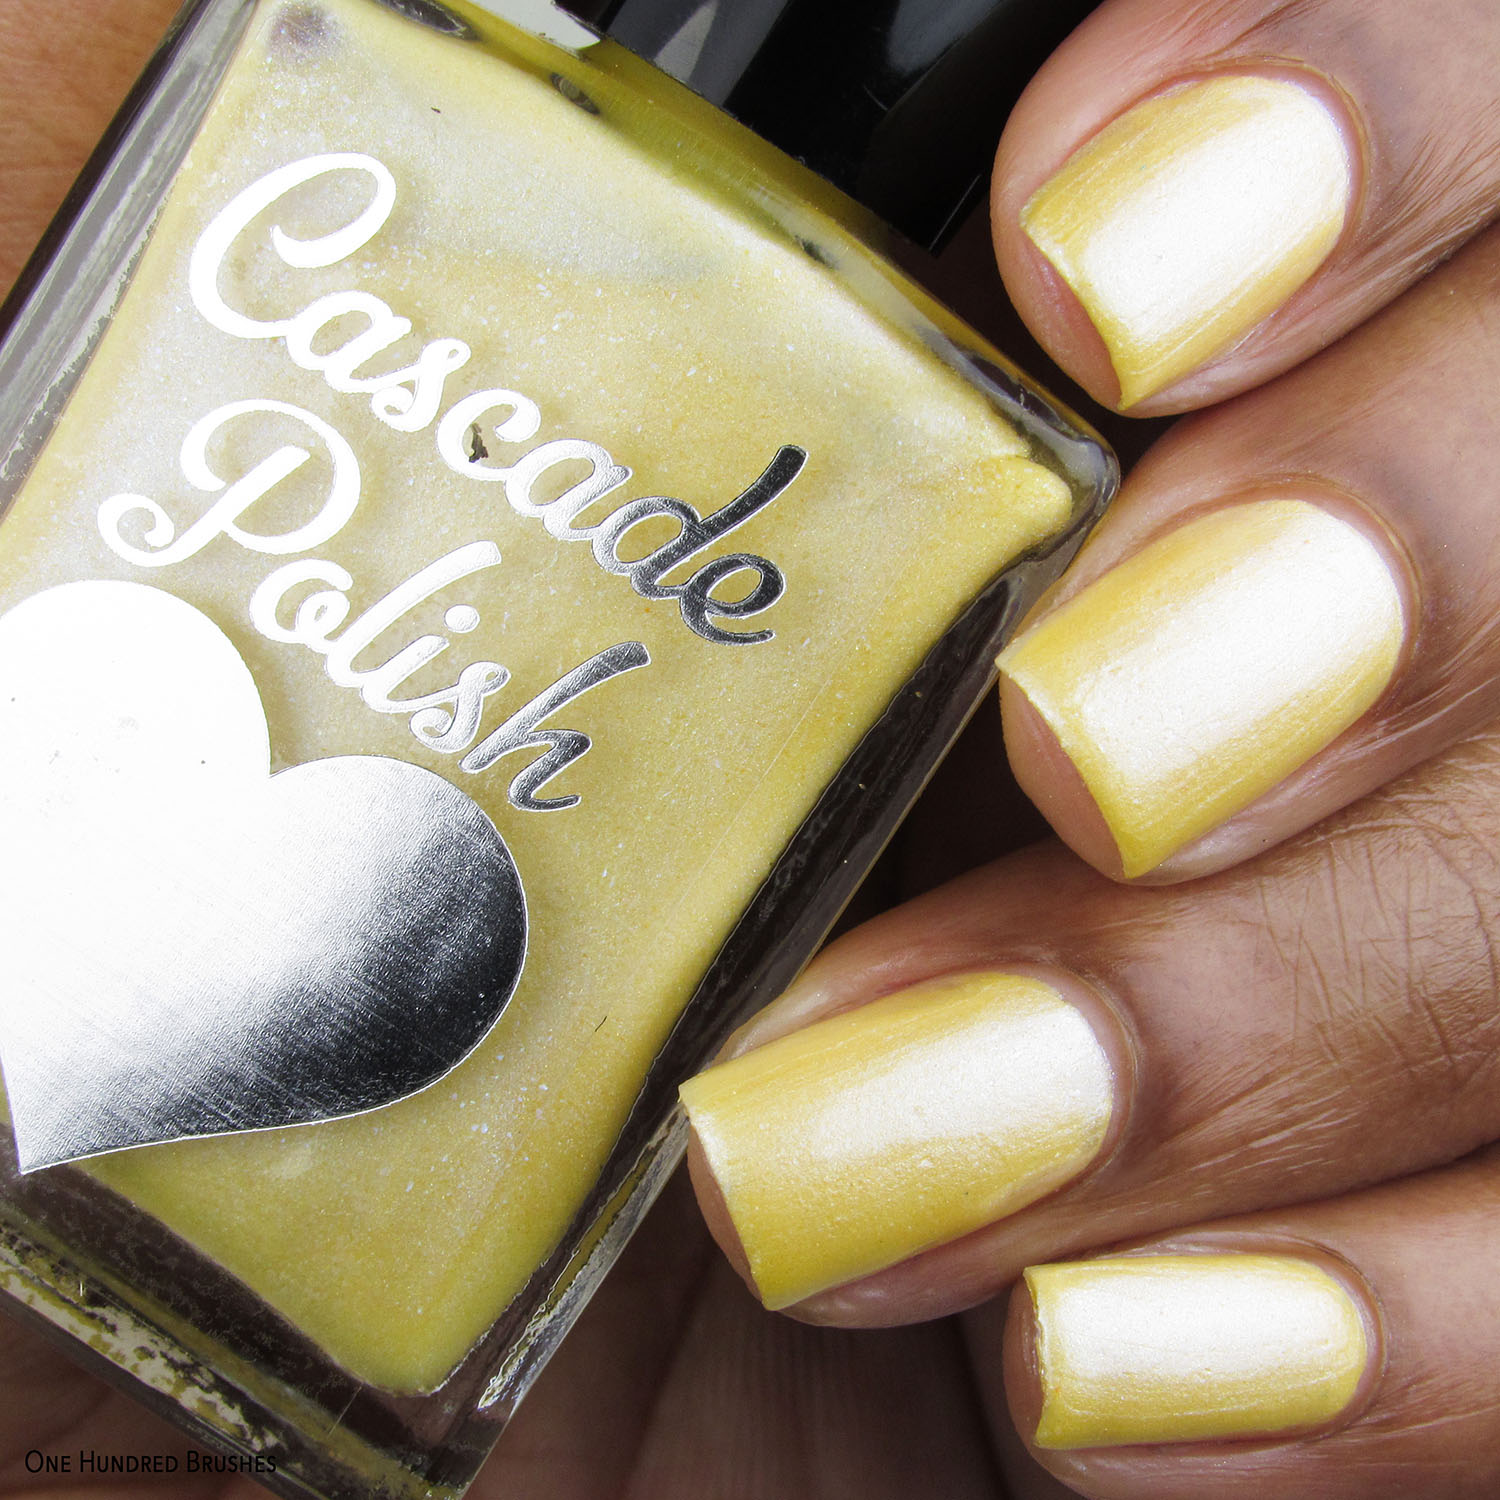 Hold Up - Copacetic Cosmetics (Cascade Polish) - Fallout Polished Gamers February 2020